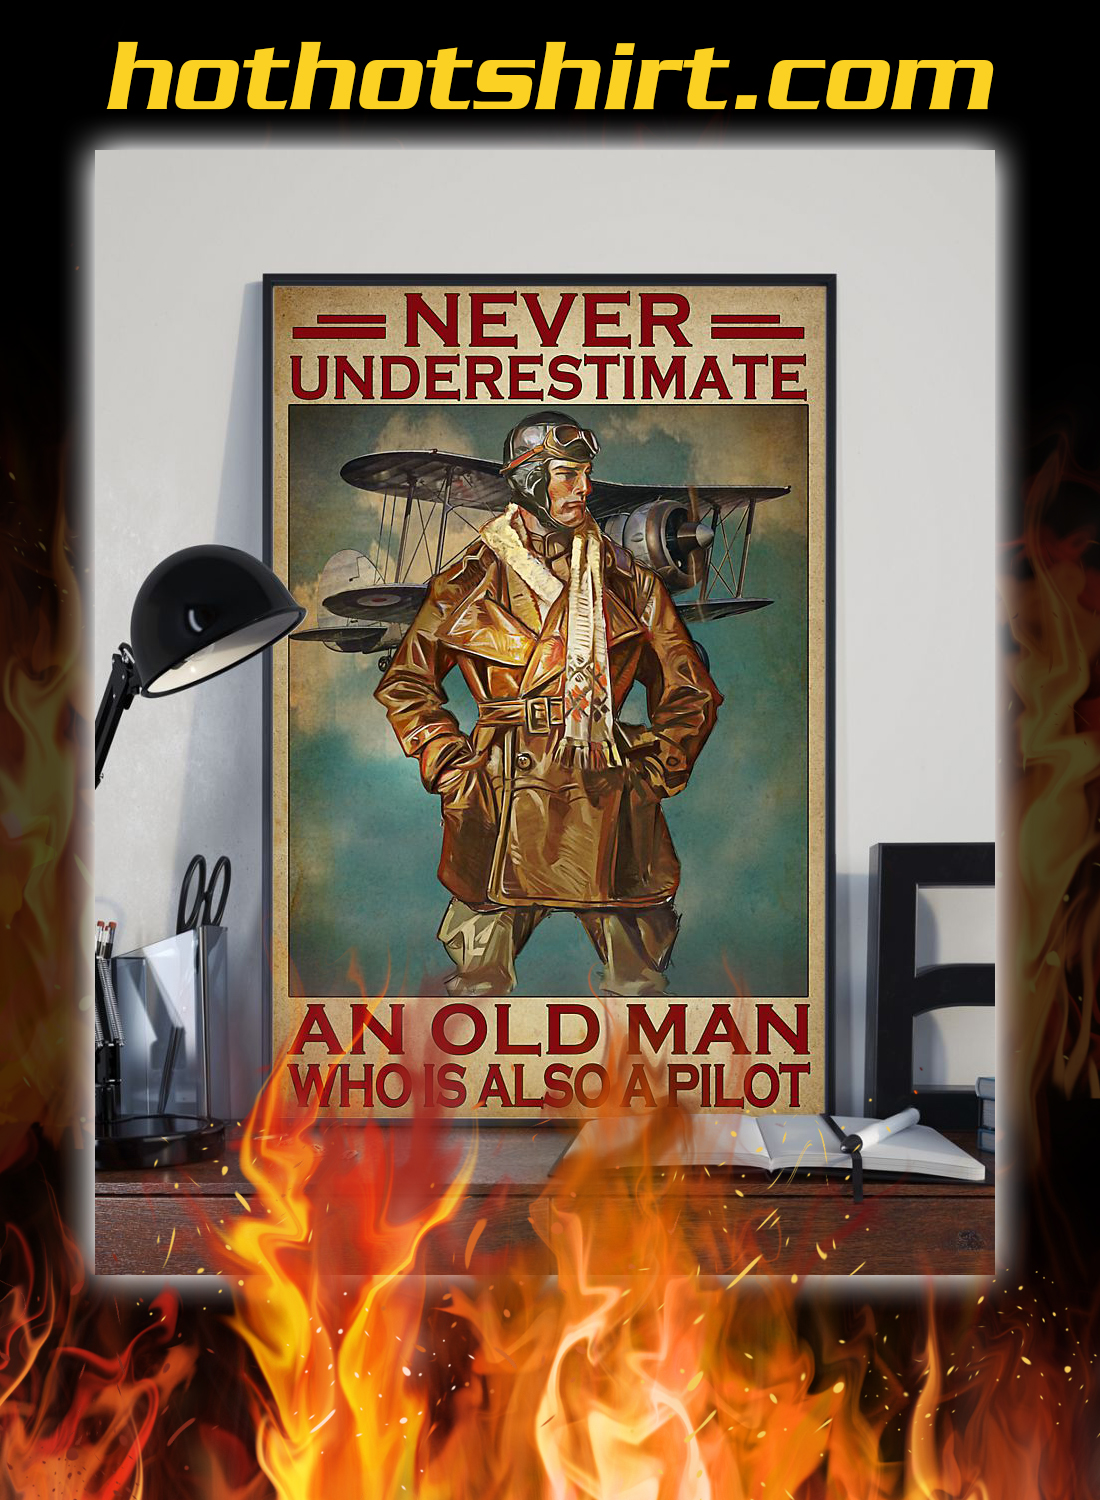 Never underestimate an old man who is also a pilot poster 2